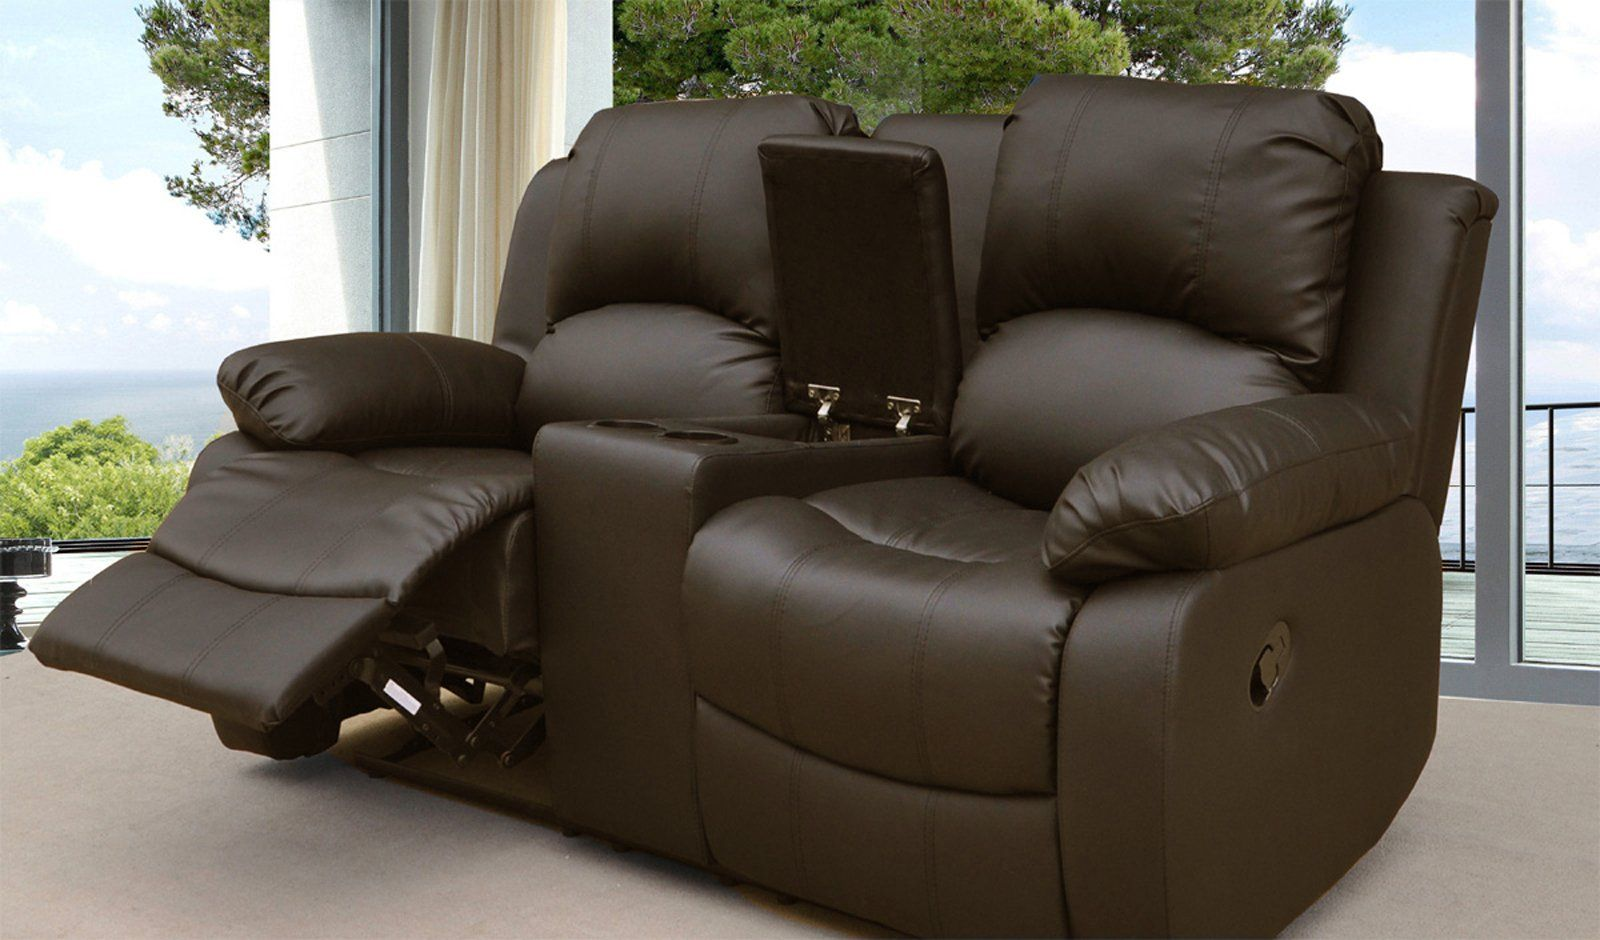 Lovesofas Valencia 2 Seater Leather Recliner Sofa With Drinks